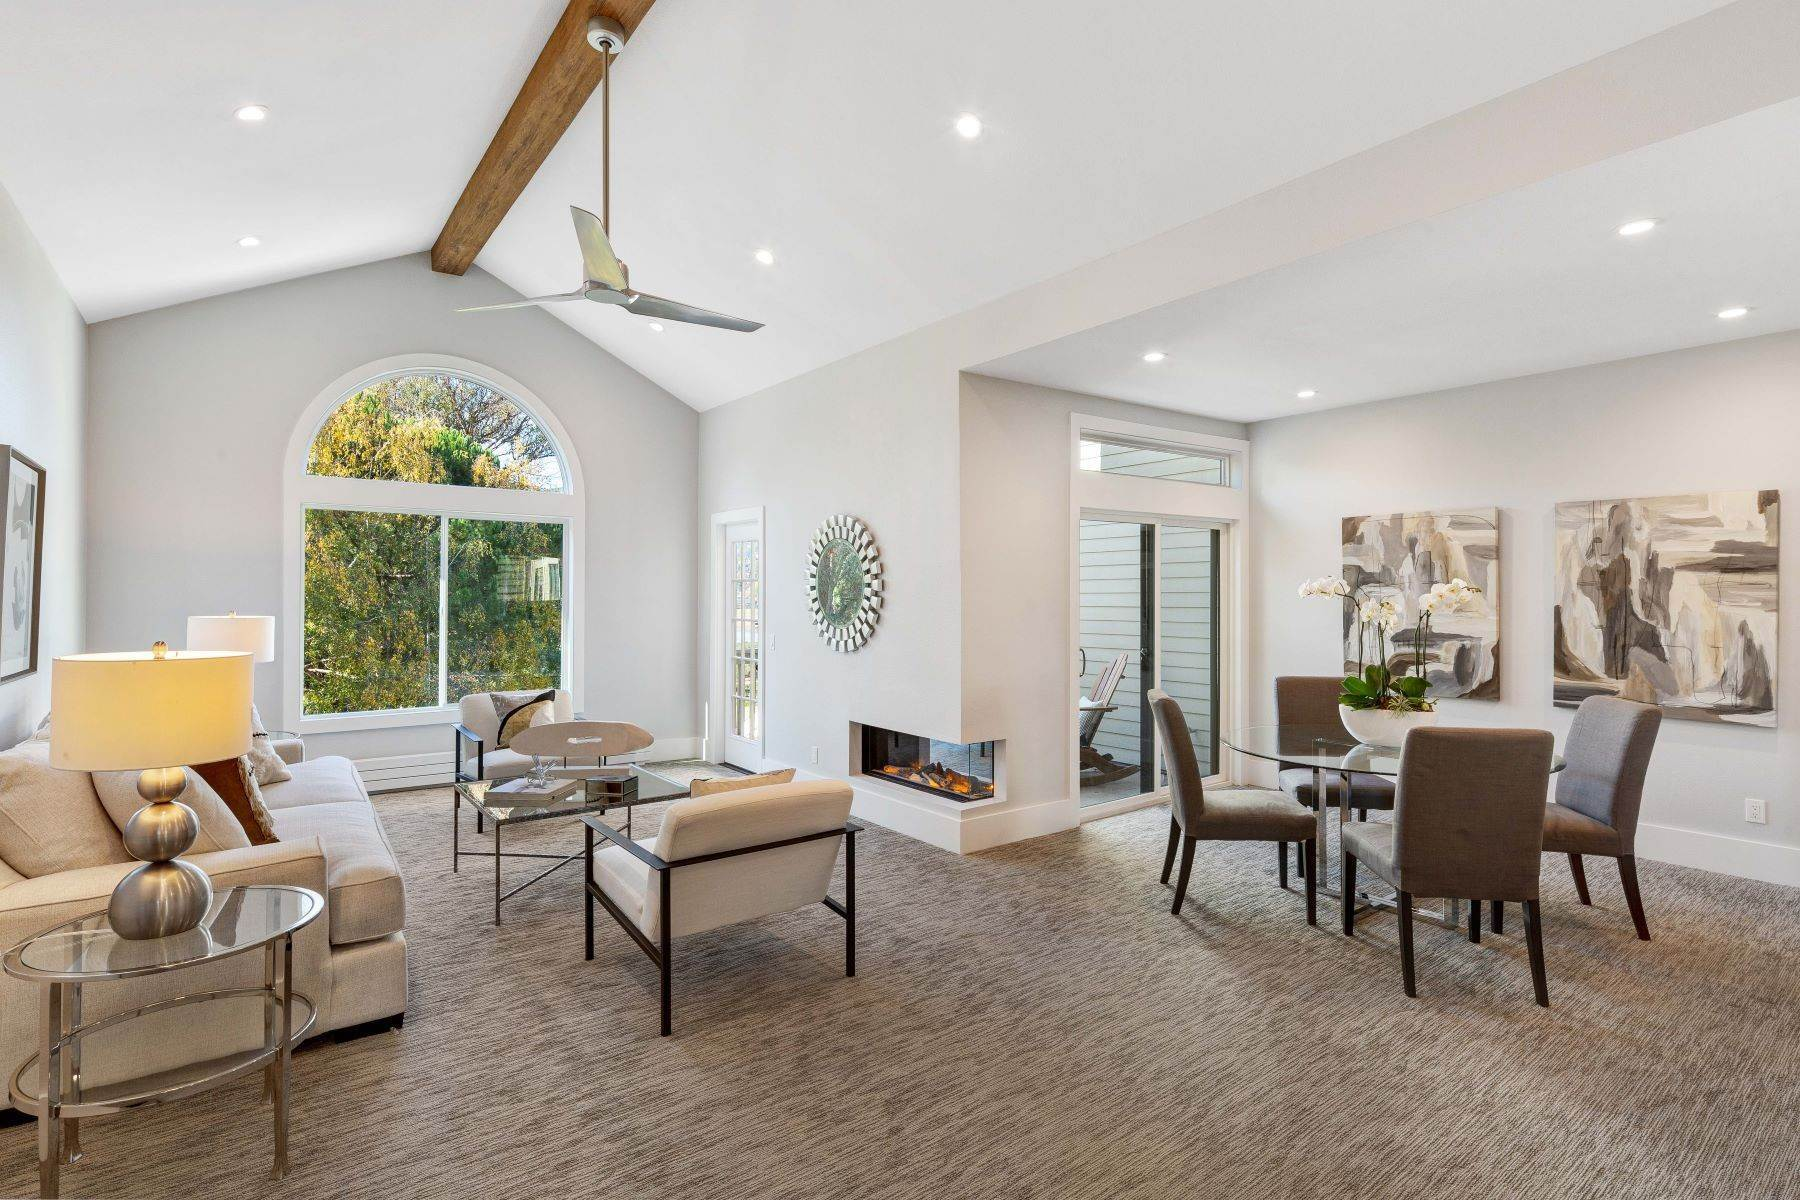 Condominiums at Prepare to be Enchanted – Stunning Remodel 103 Eucalyptus Knoll Street Mill Valley, California 94941 United States